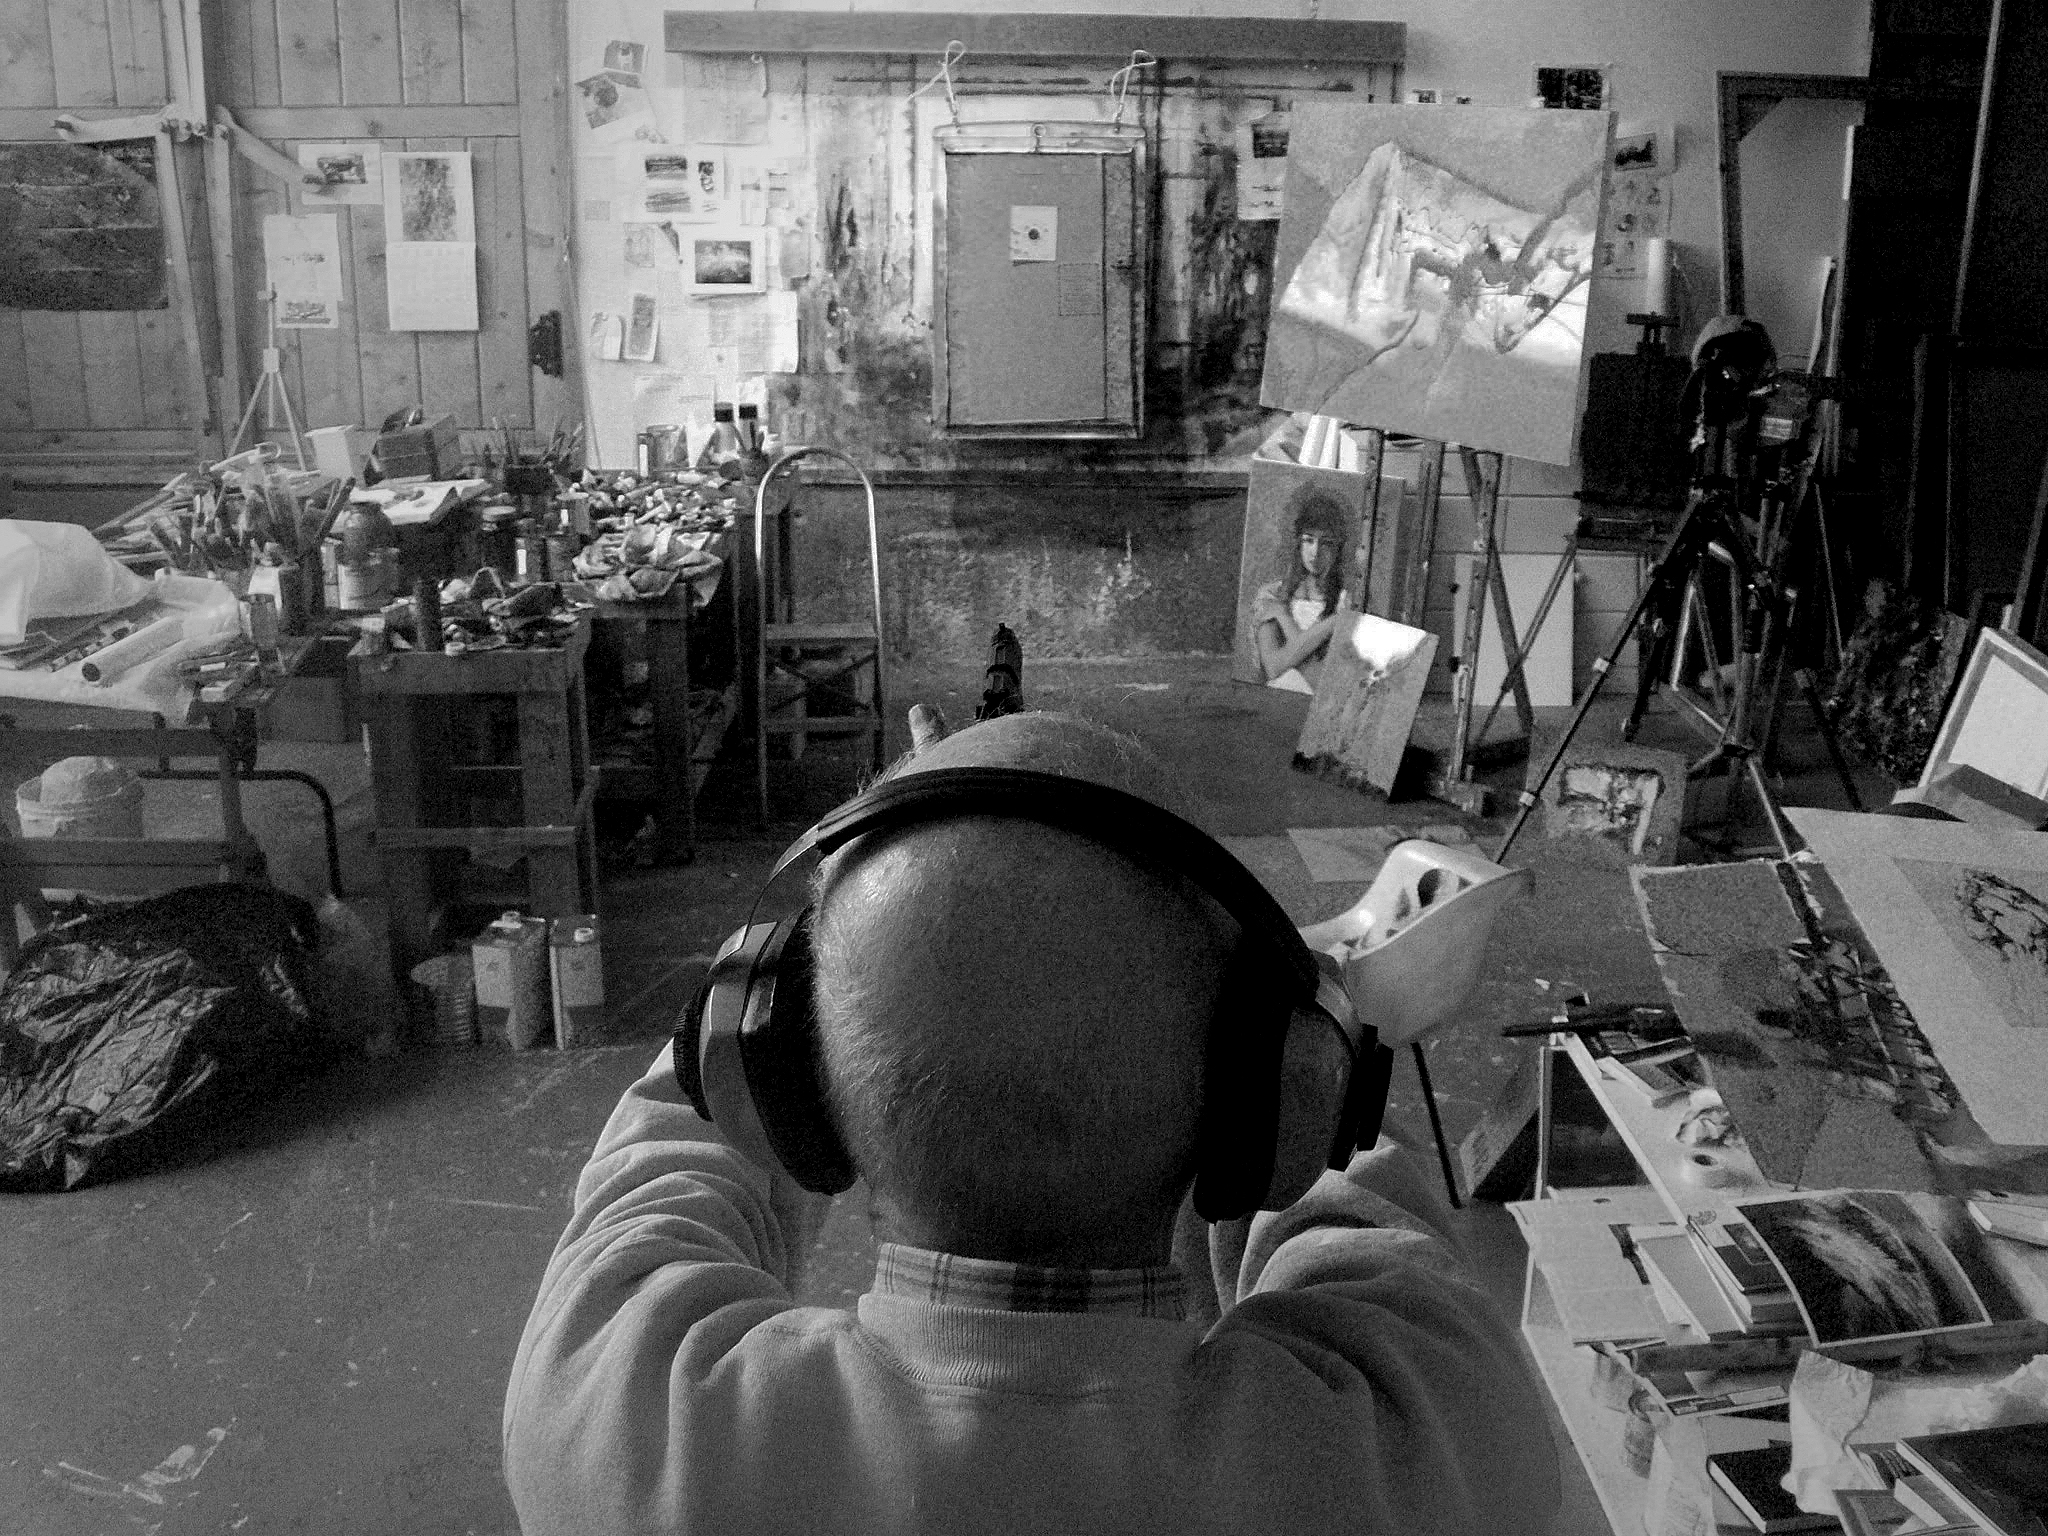 A man seen from the back shoots a target inside a painting studio